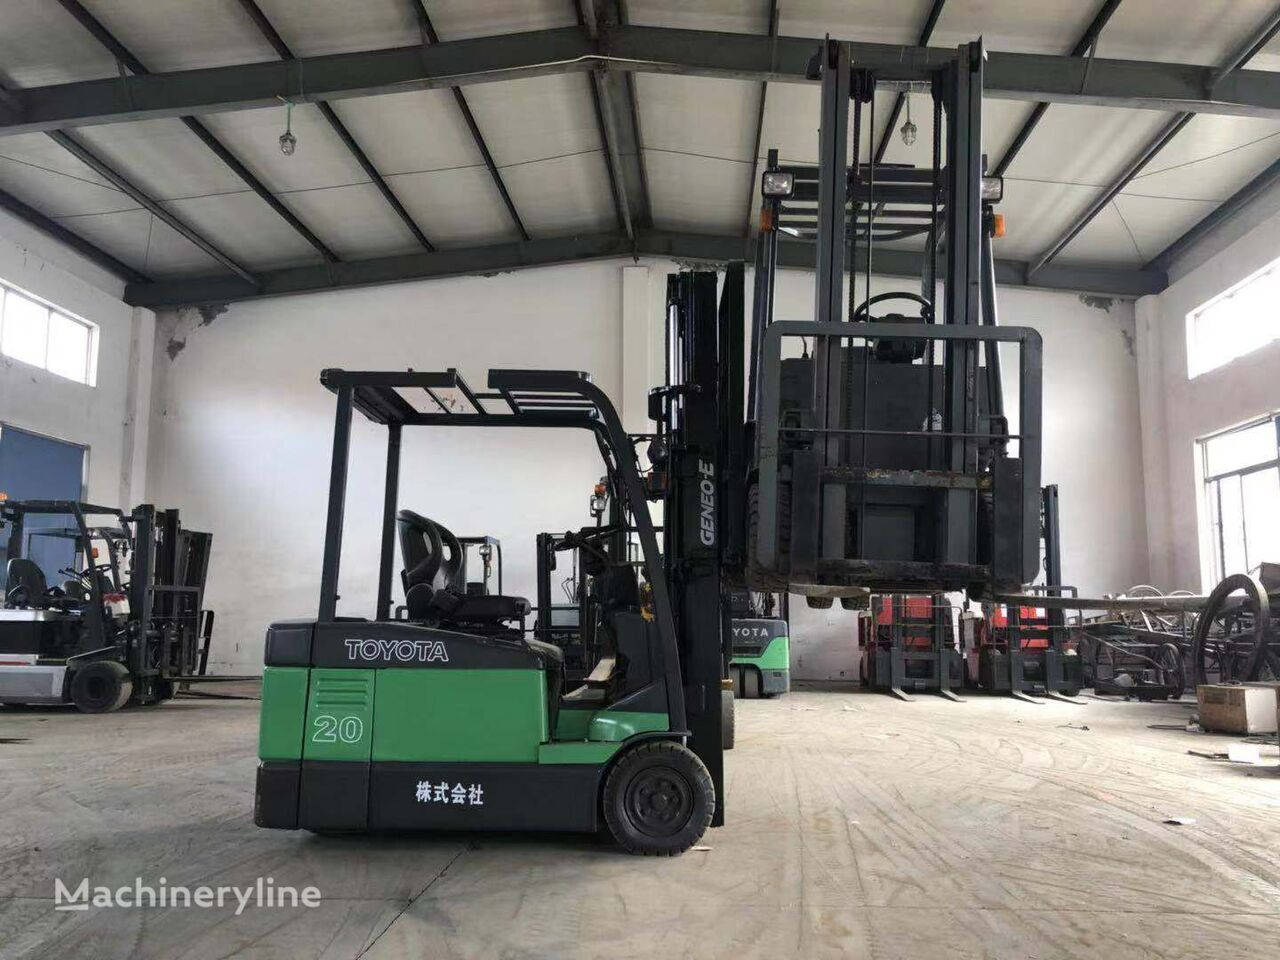 TOYOTA USED  ELECTRIC  FORKLIFT  CHEAP  PRICE  IN  SHANGHAI  YARD forklift